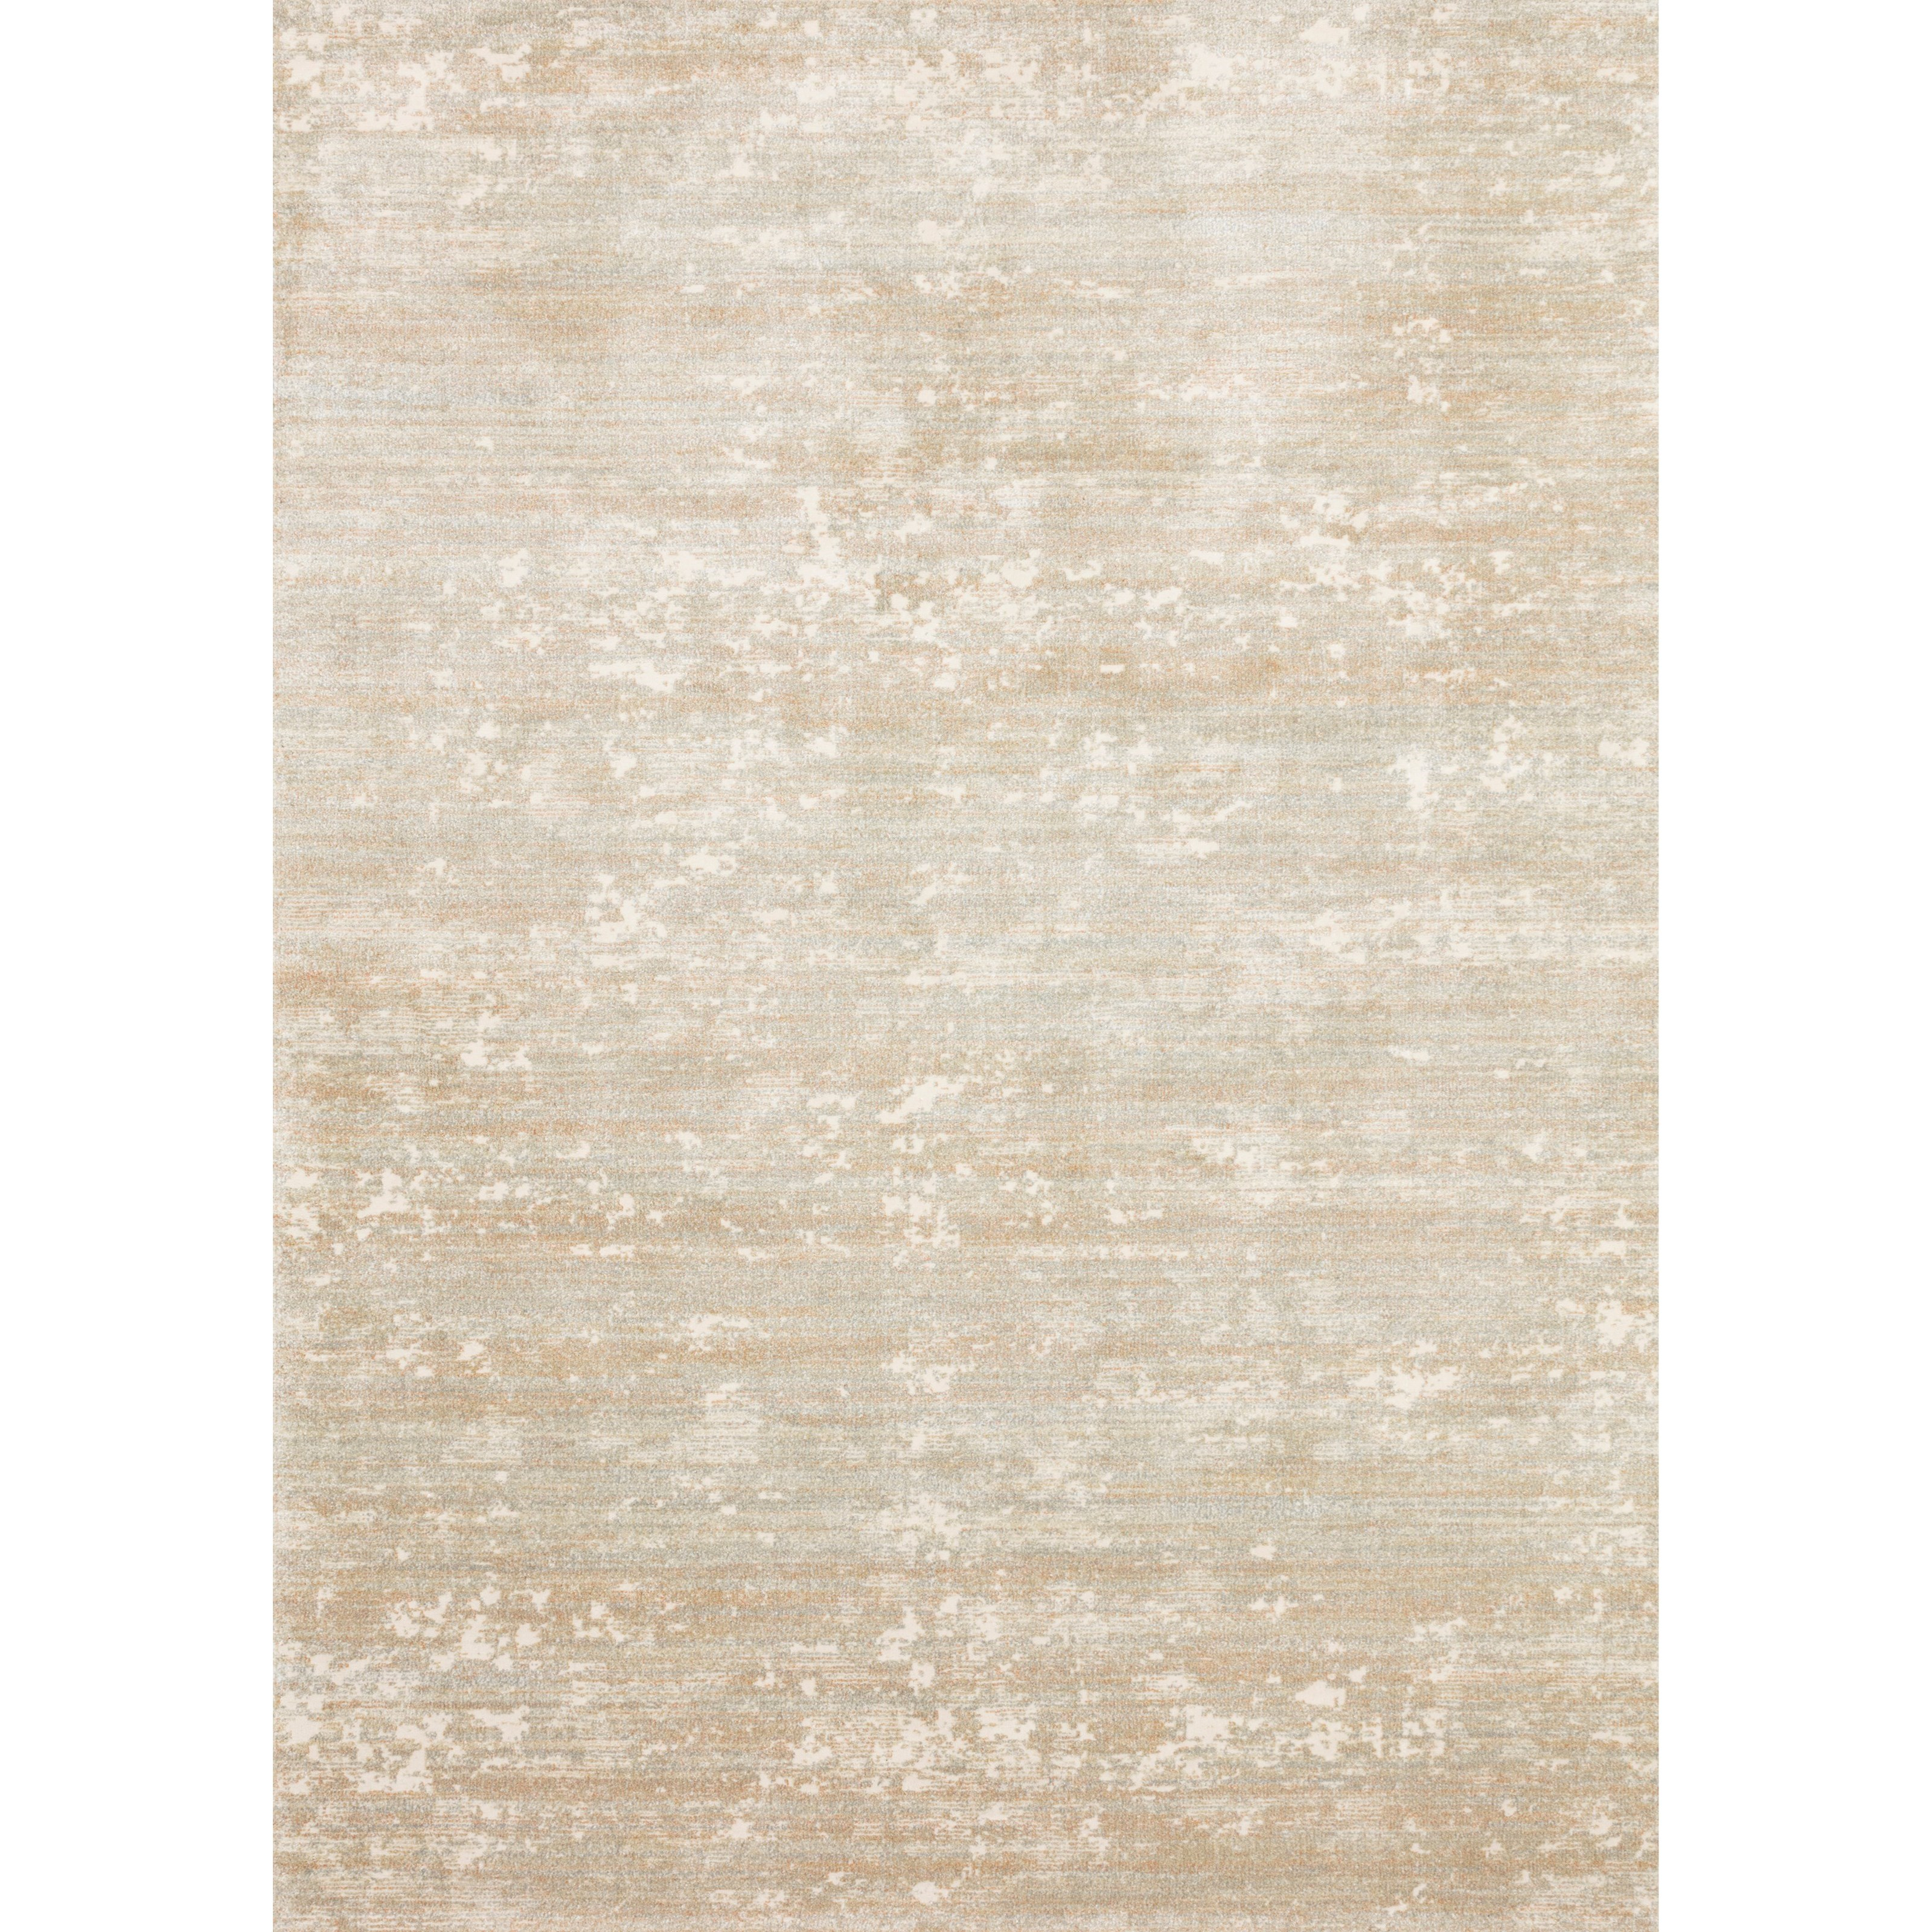 """Augustus 1'6"""" x 1'6""""  Sunset / Mist Rug by Loloi Rugs at Virginia Furniture Market"""